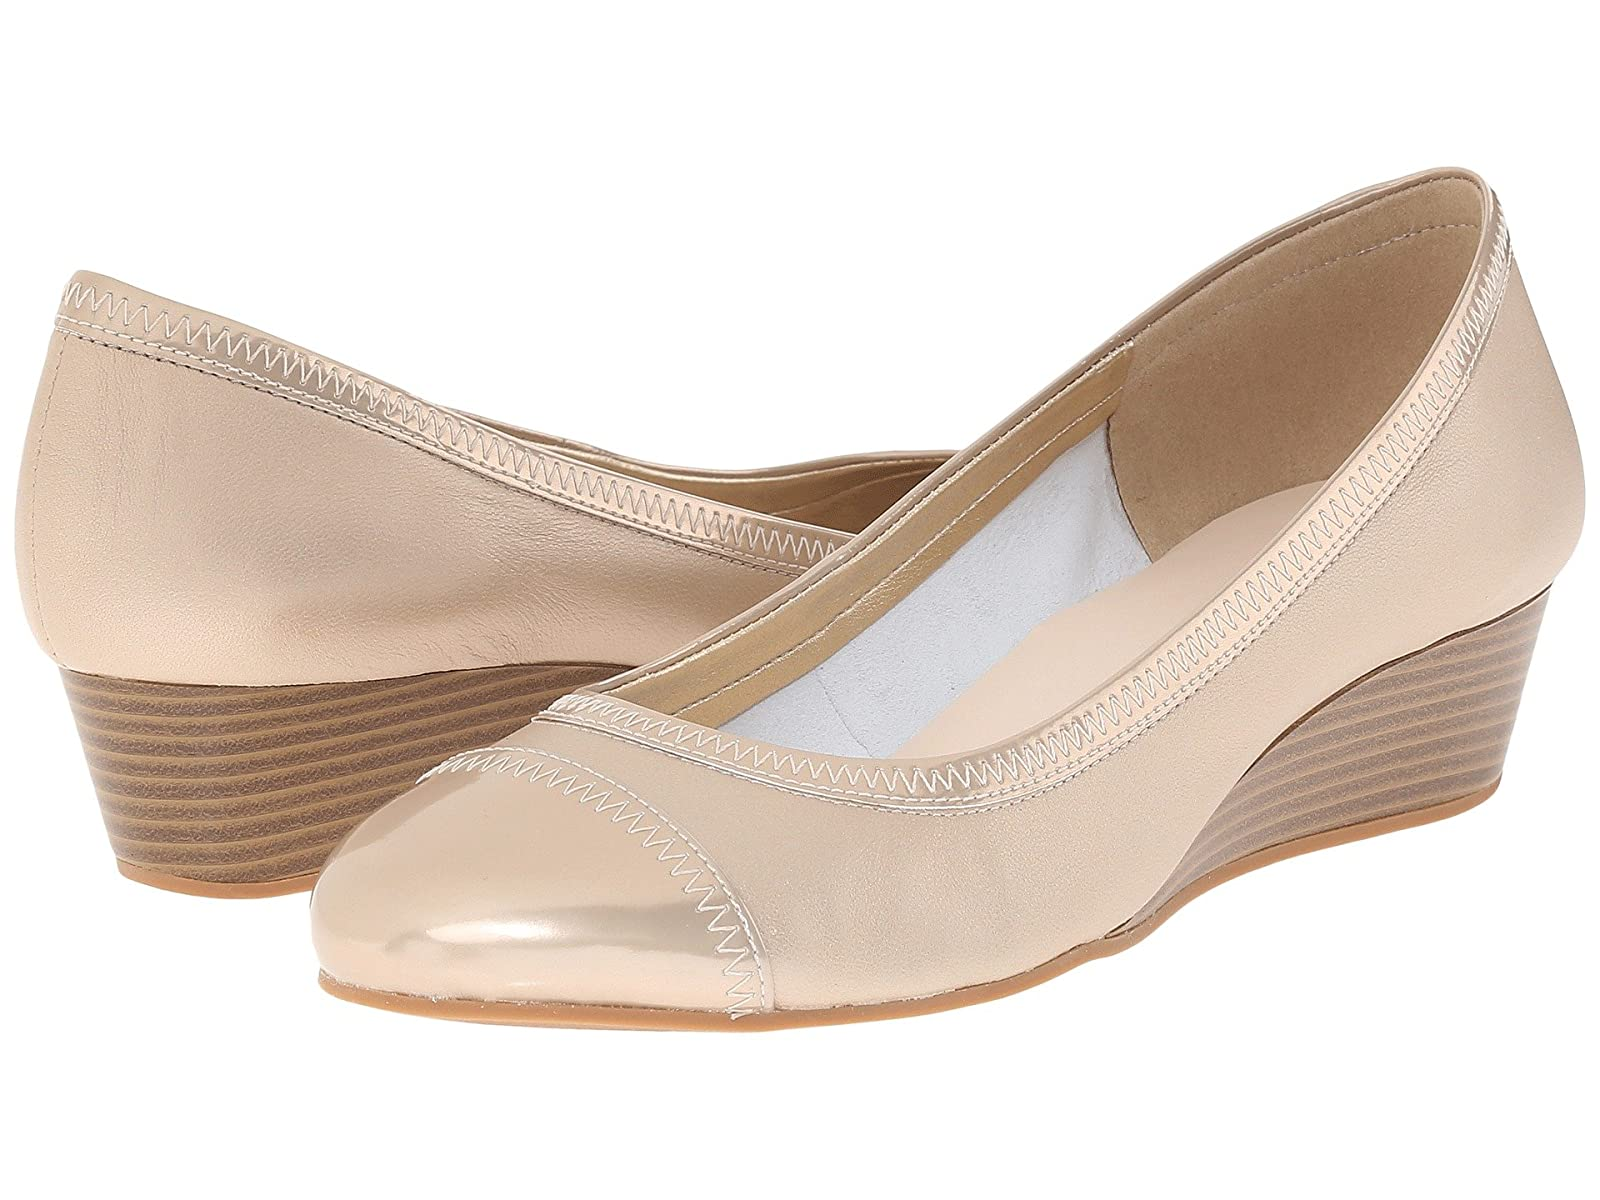 Cole Haan Elsie Cap Toe Wedge IICheap and distinctive eye-catching shoes